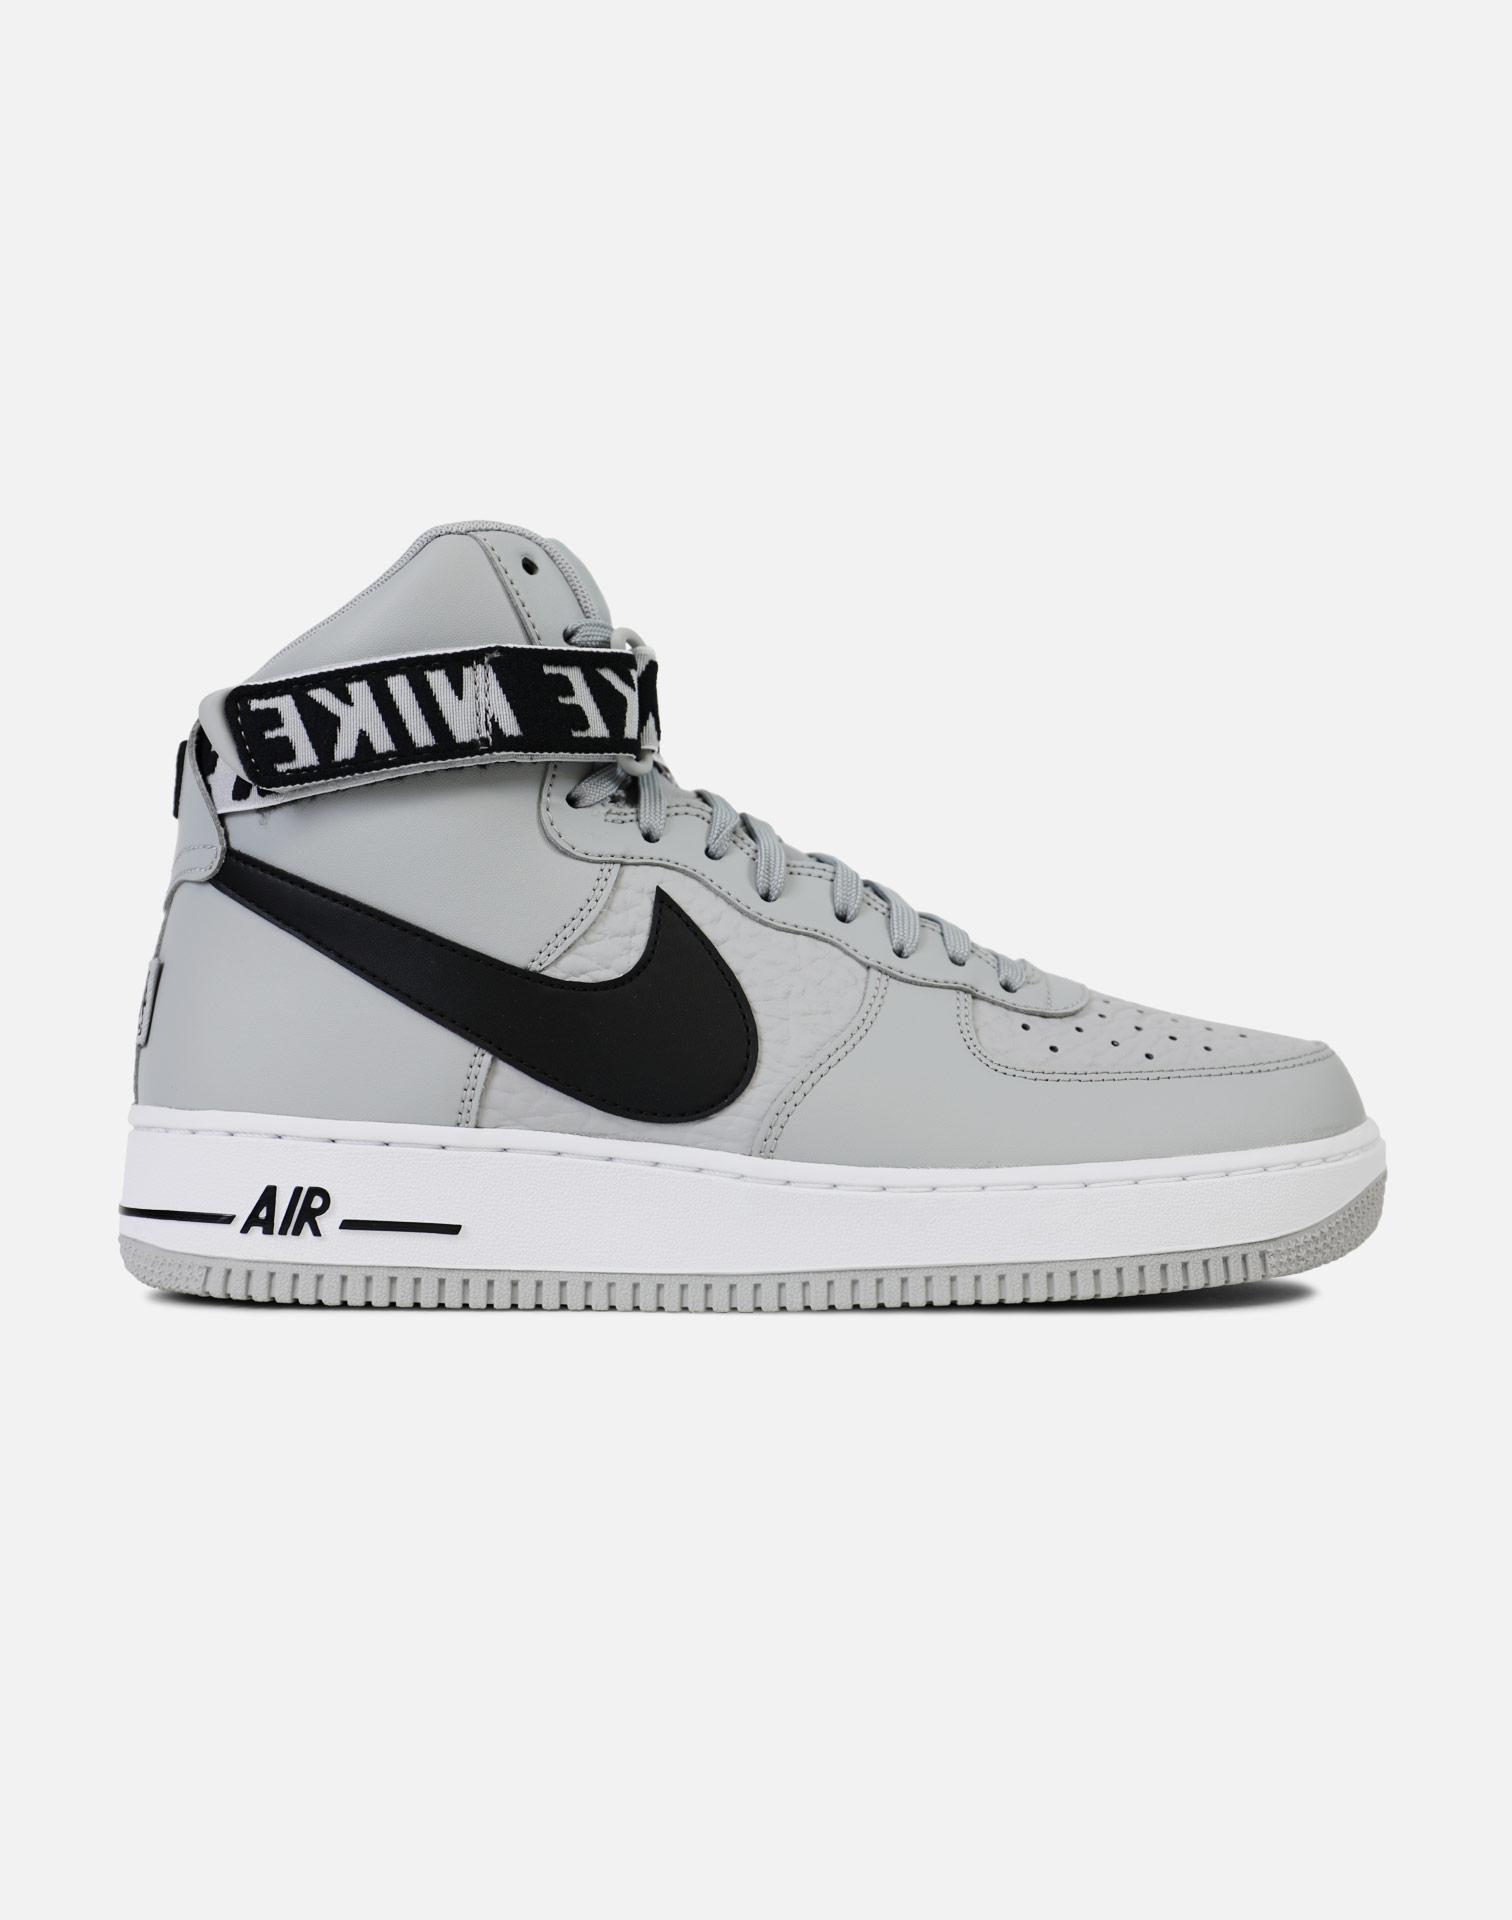 Lyst Nike Air Force 1 High 07 silver Black White in Gray for Men